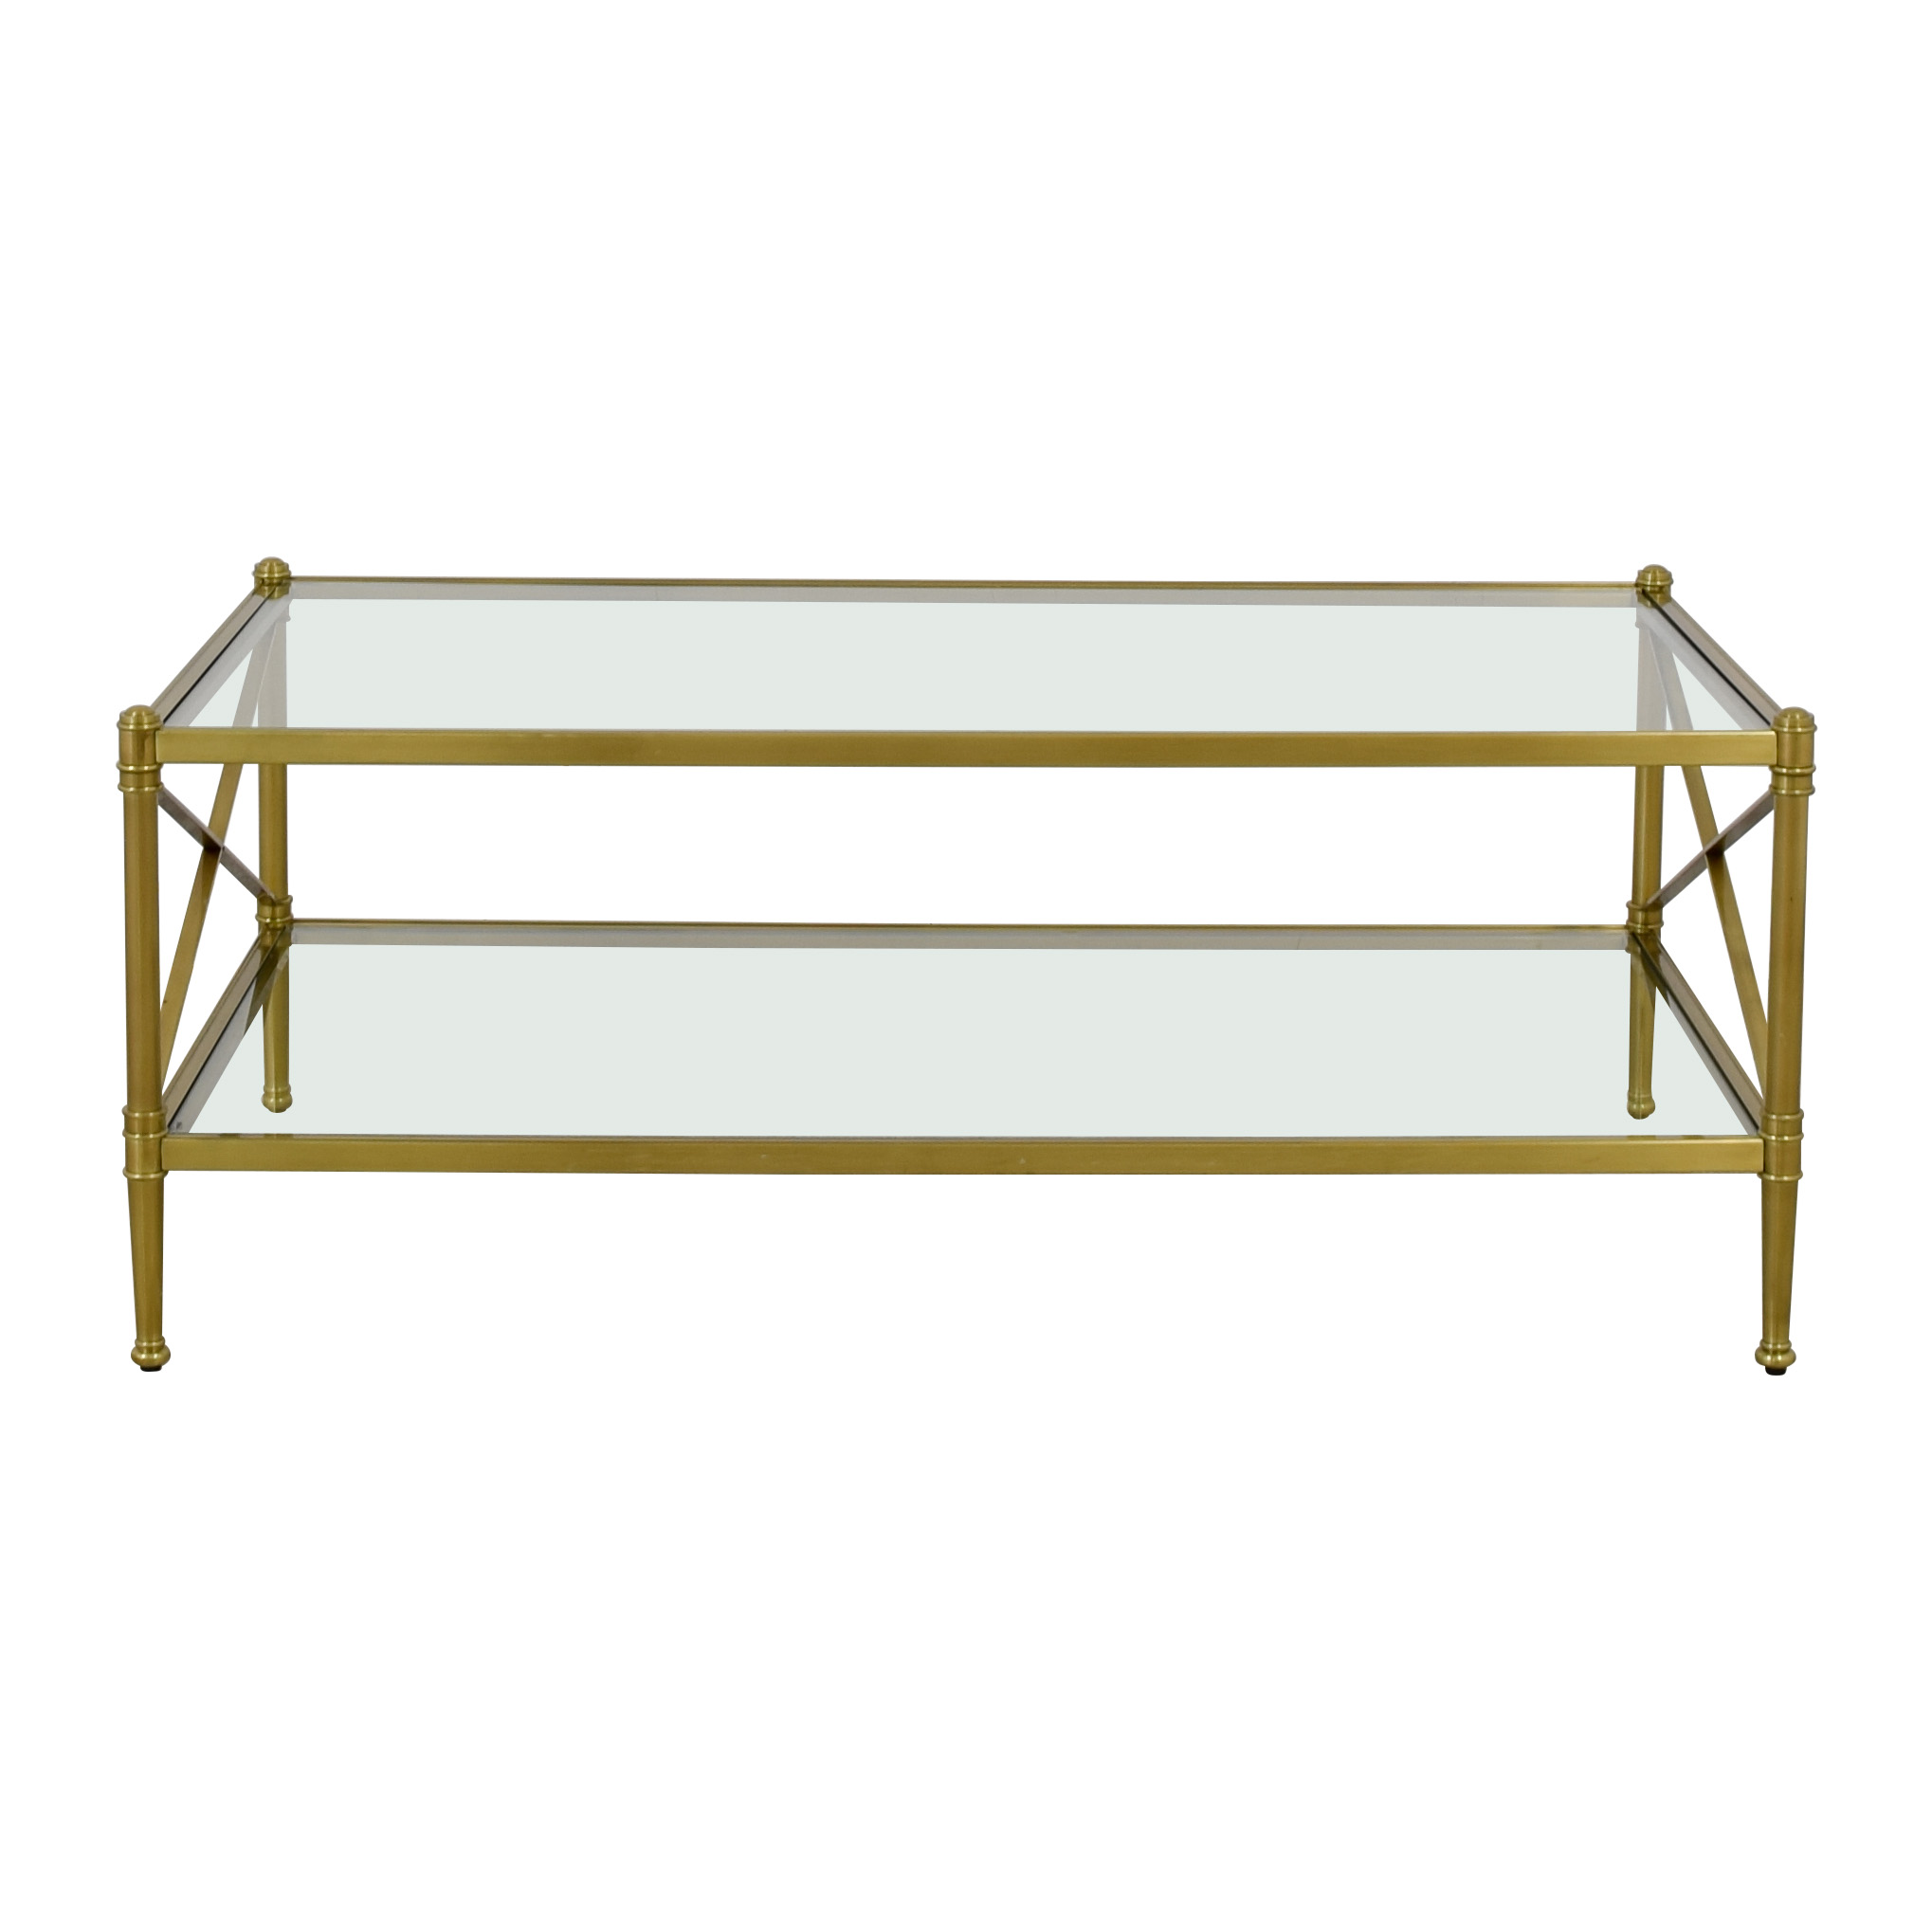 Restoration Hardware Restoration Hardware Coffee Table gold